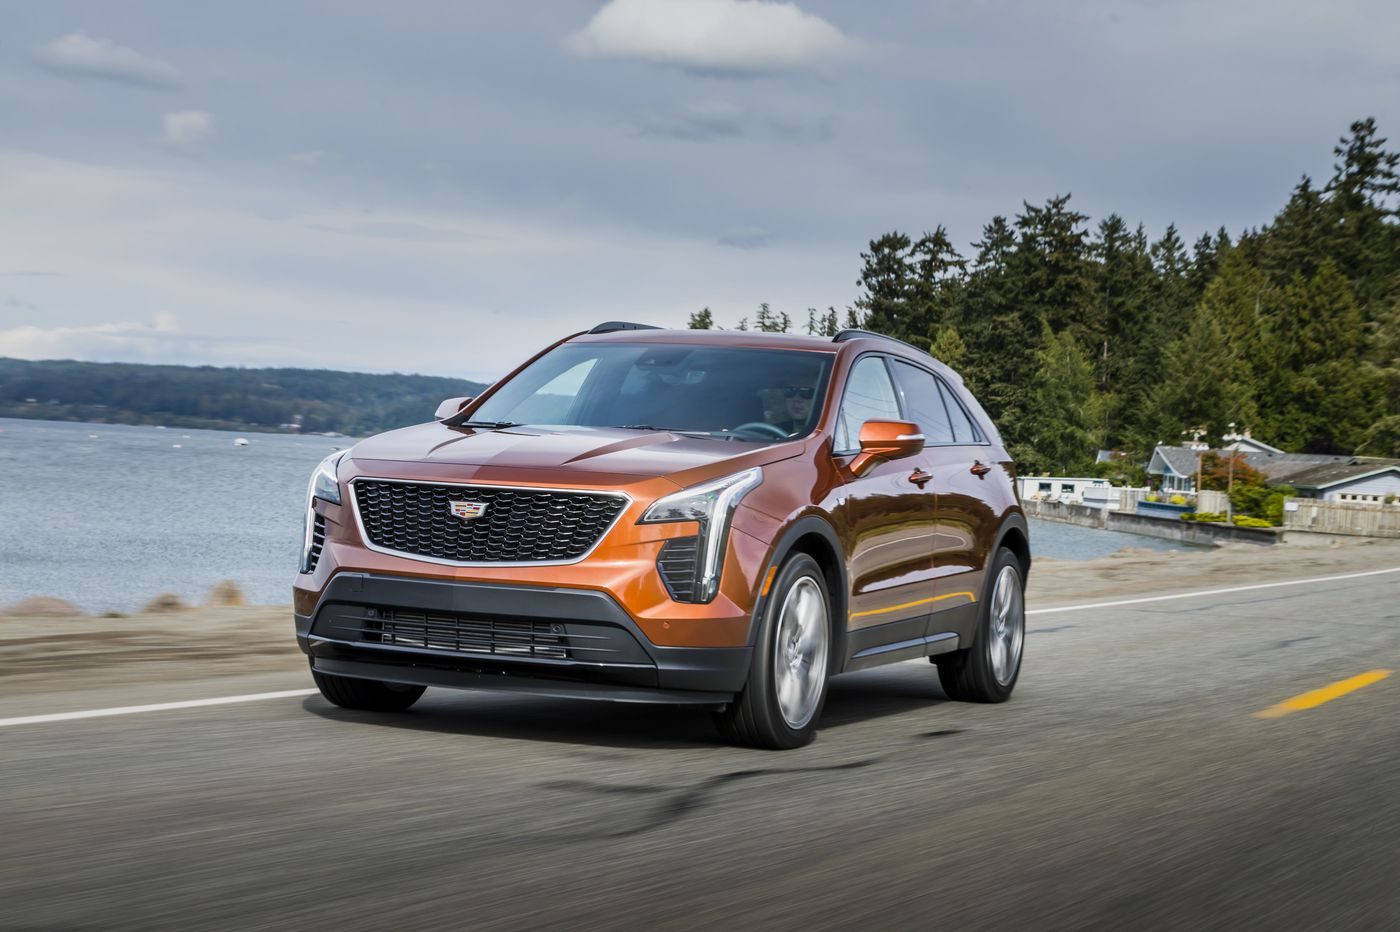 2019 Cadillac XT4: A split-personality, small premium crossover